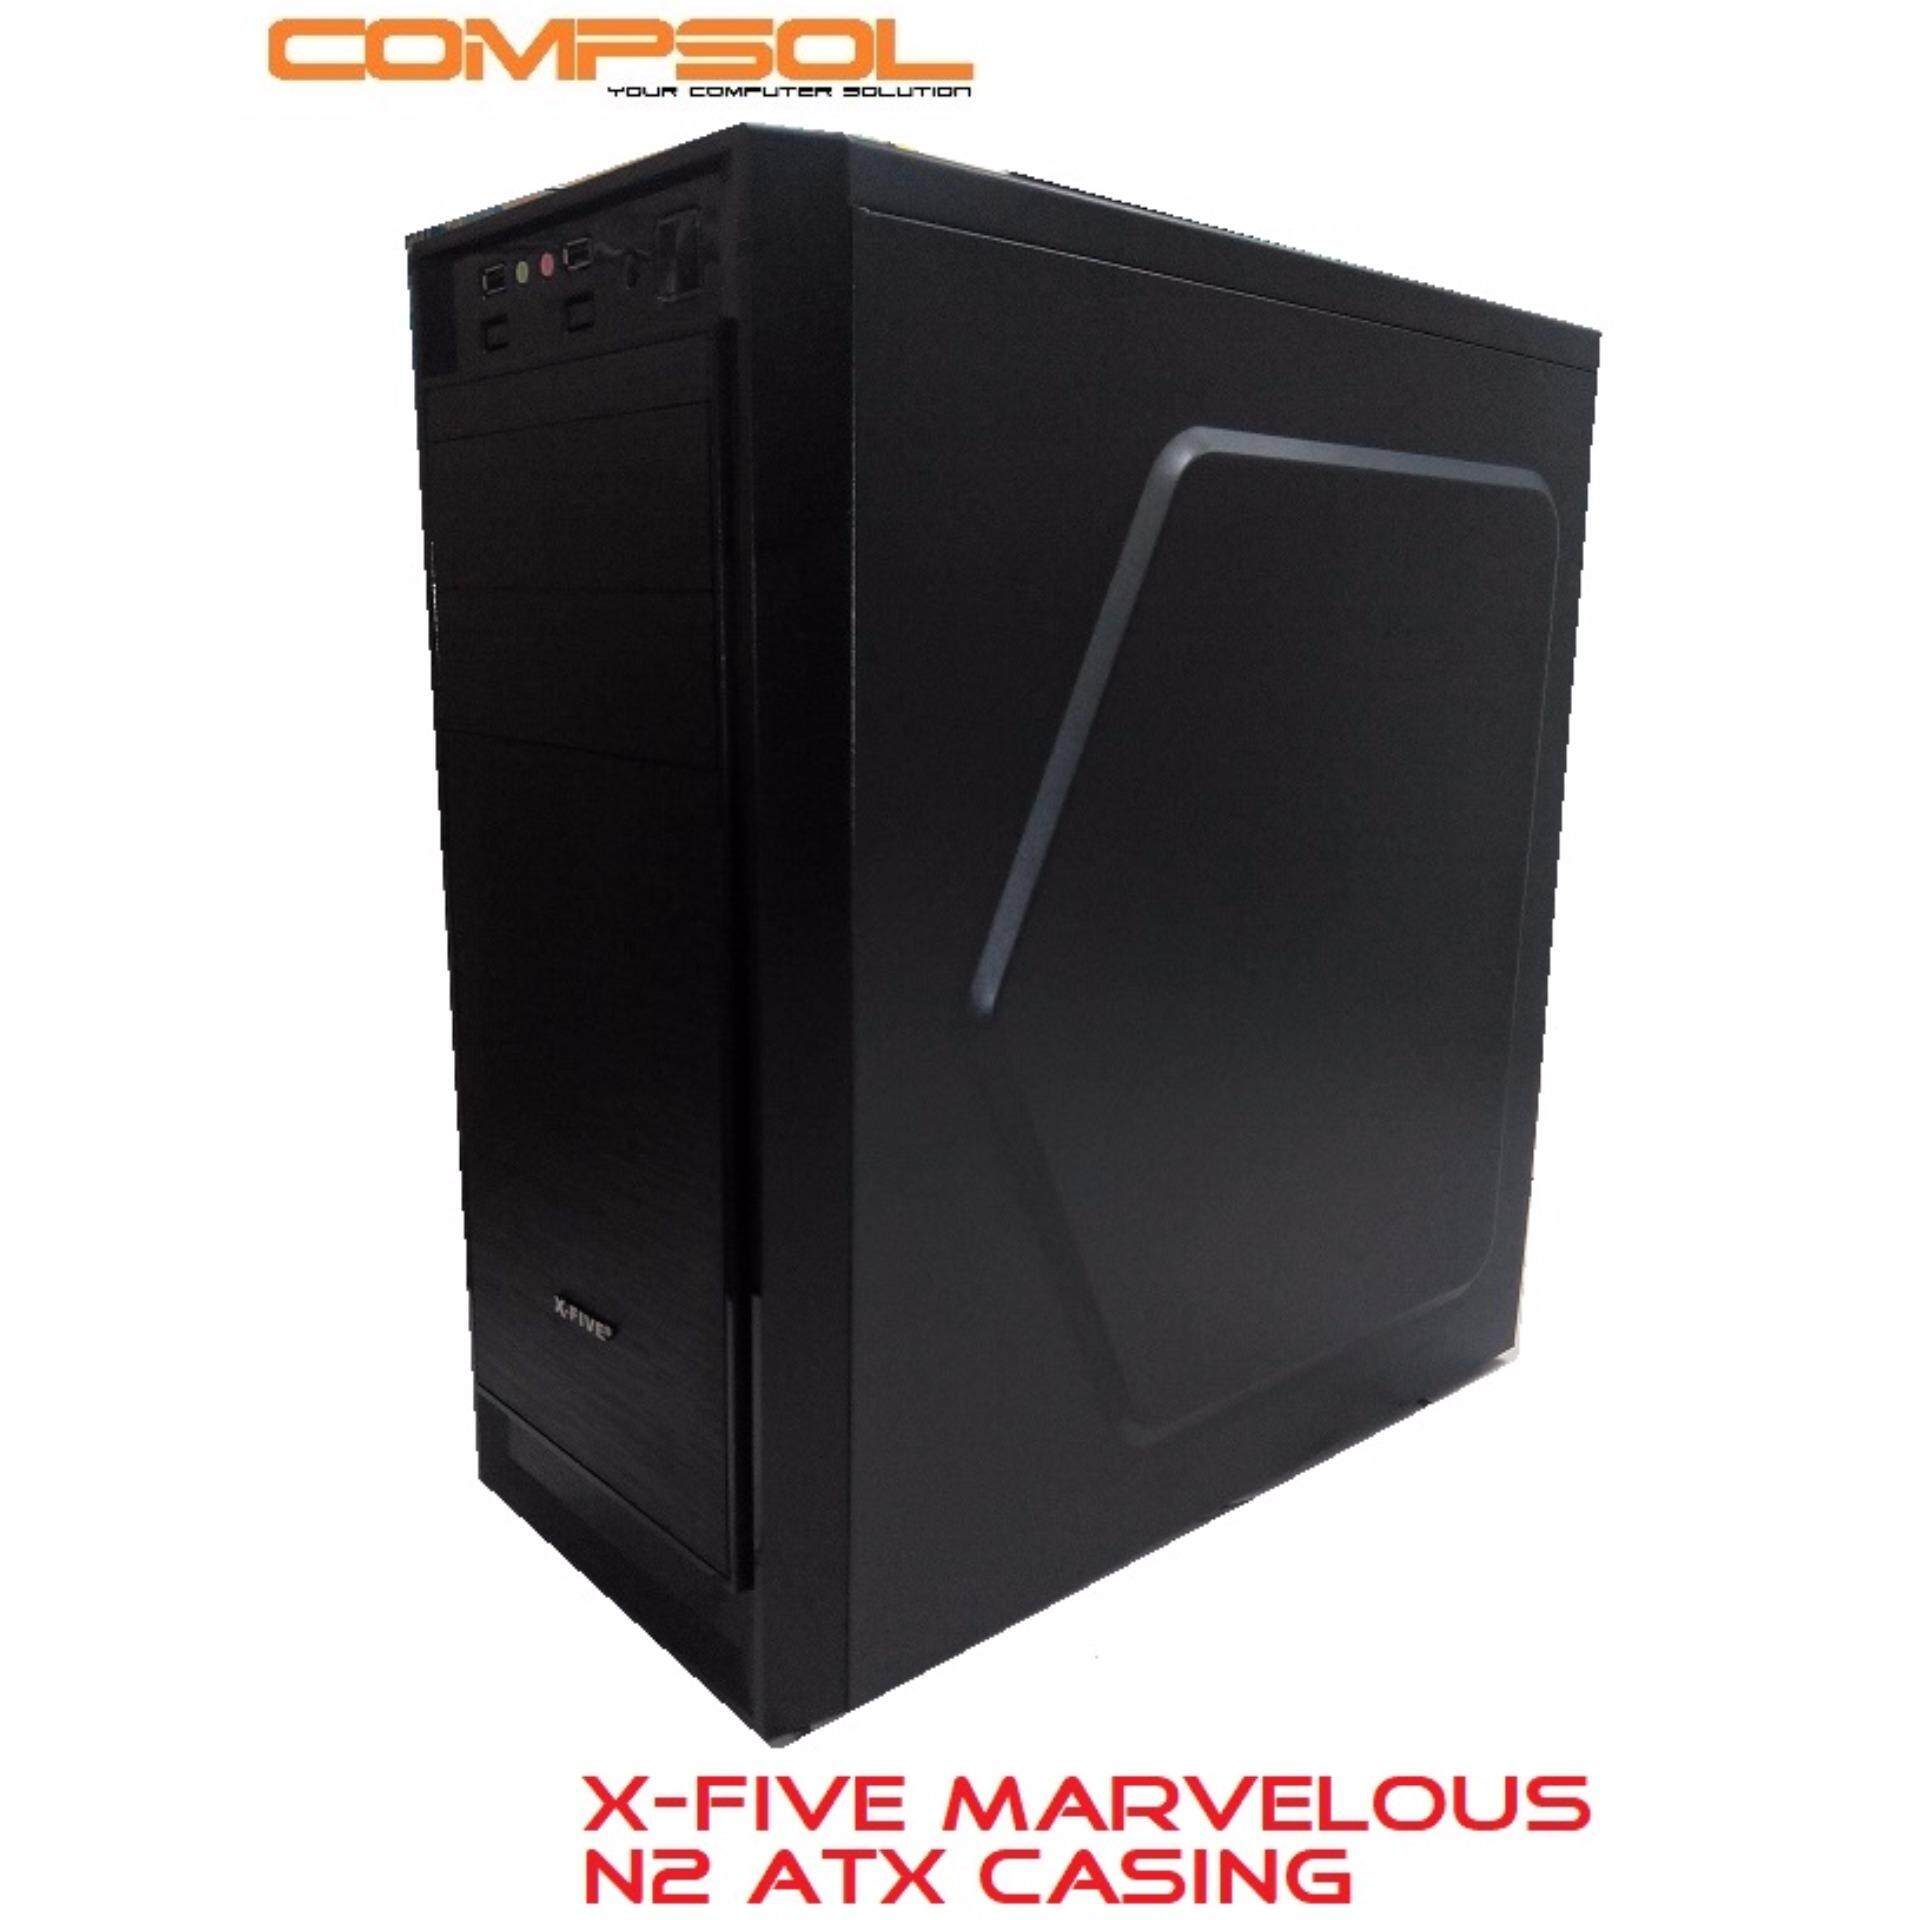 X-Five Marvelous N2 Atx Casing With PSU Malaysia